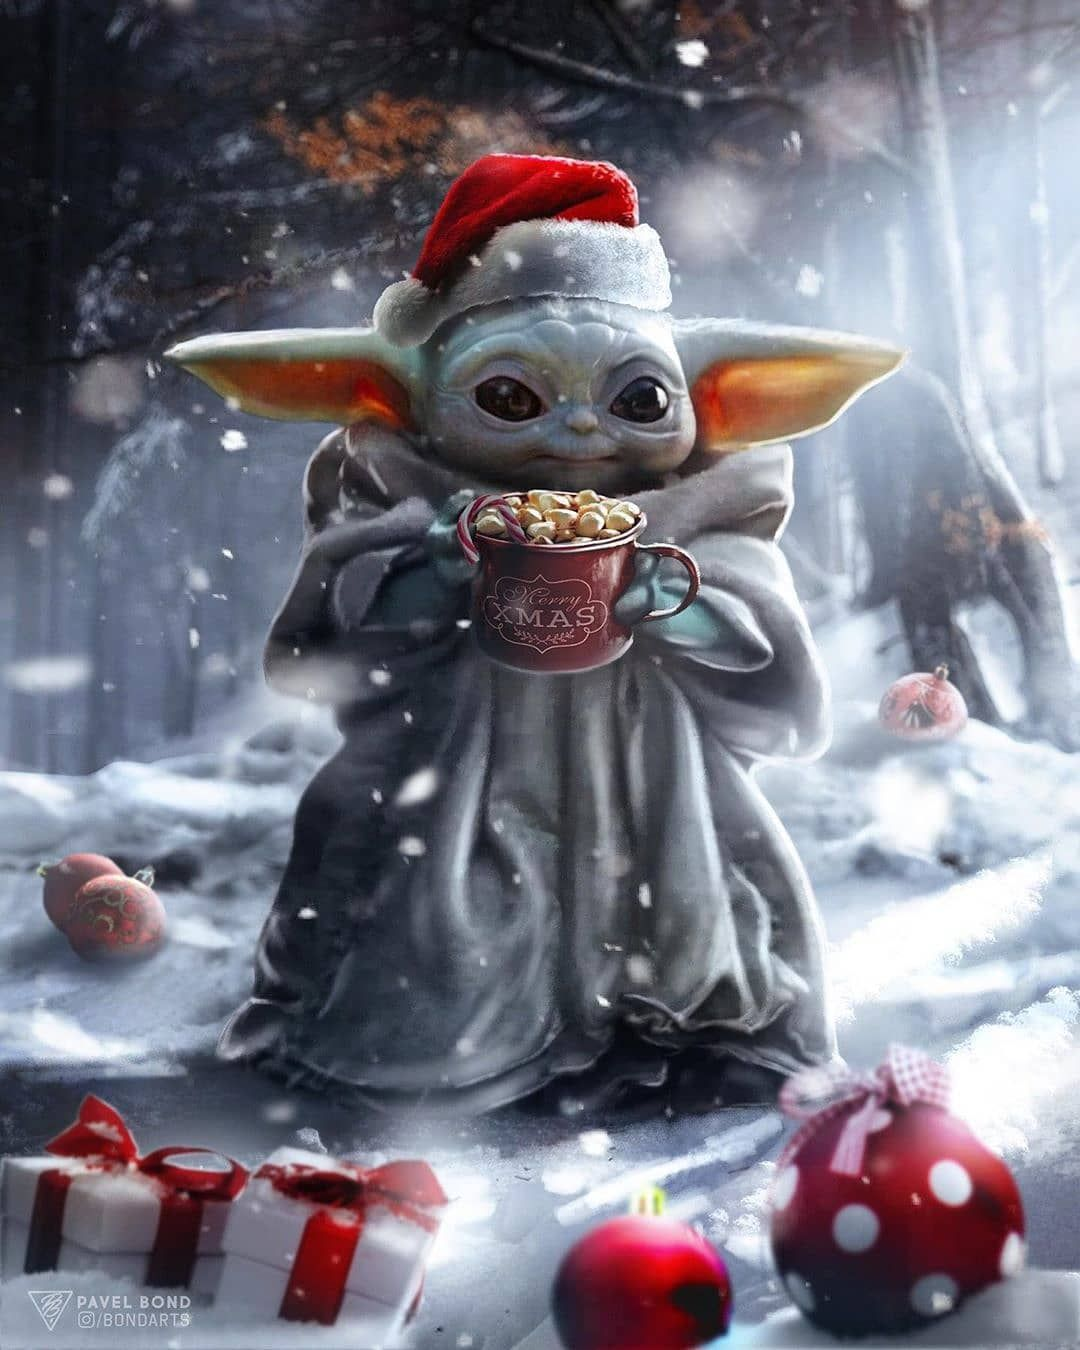 Happy New Year And Merry Christmas By Pavel Bond Star Wars Wallpaper Star Wars Pictures Yoda Wallpaper